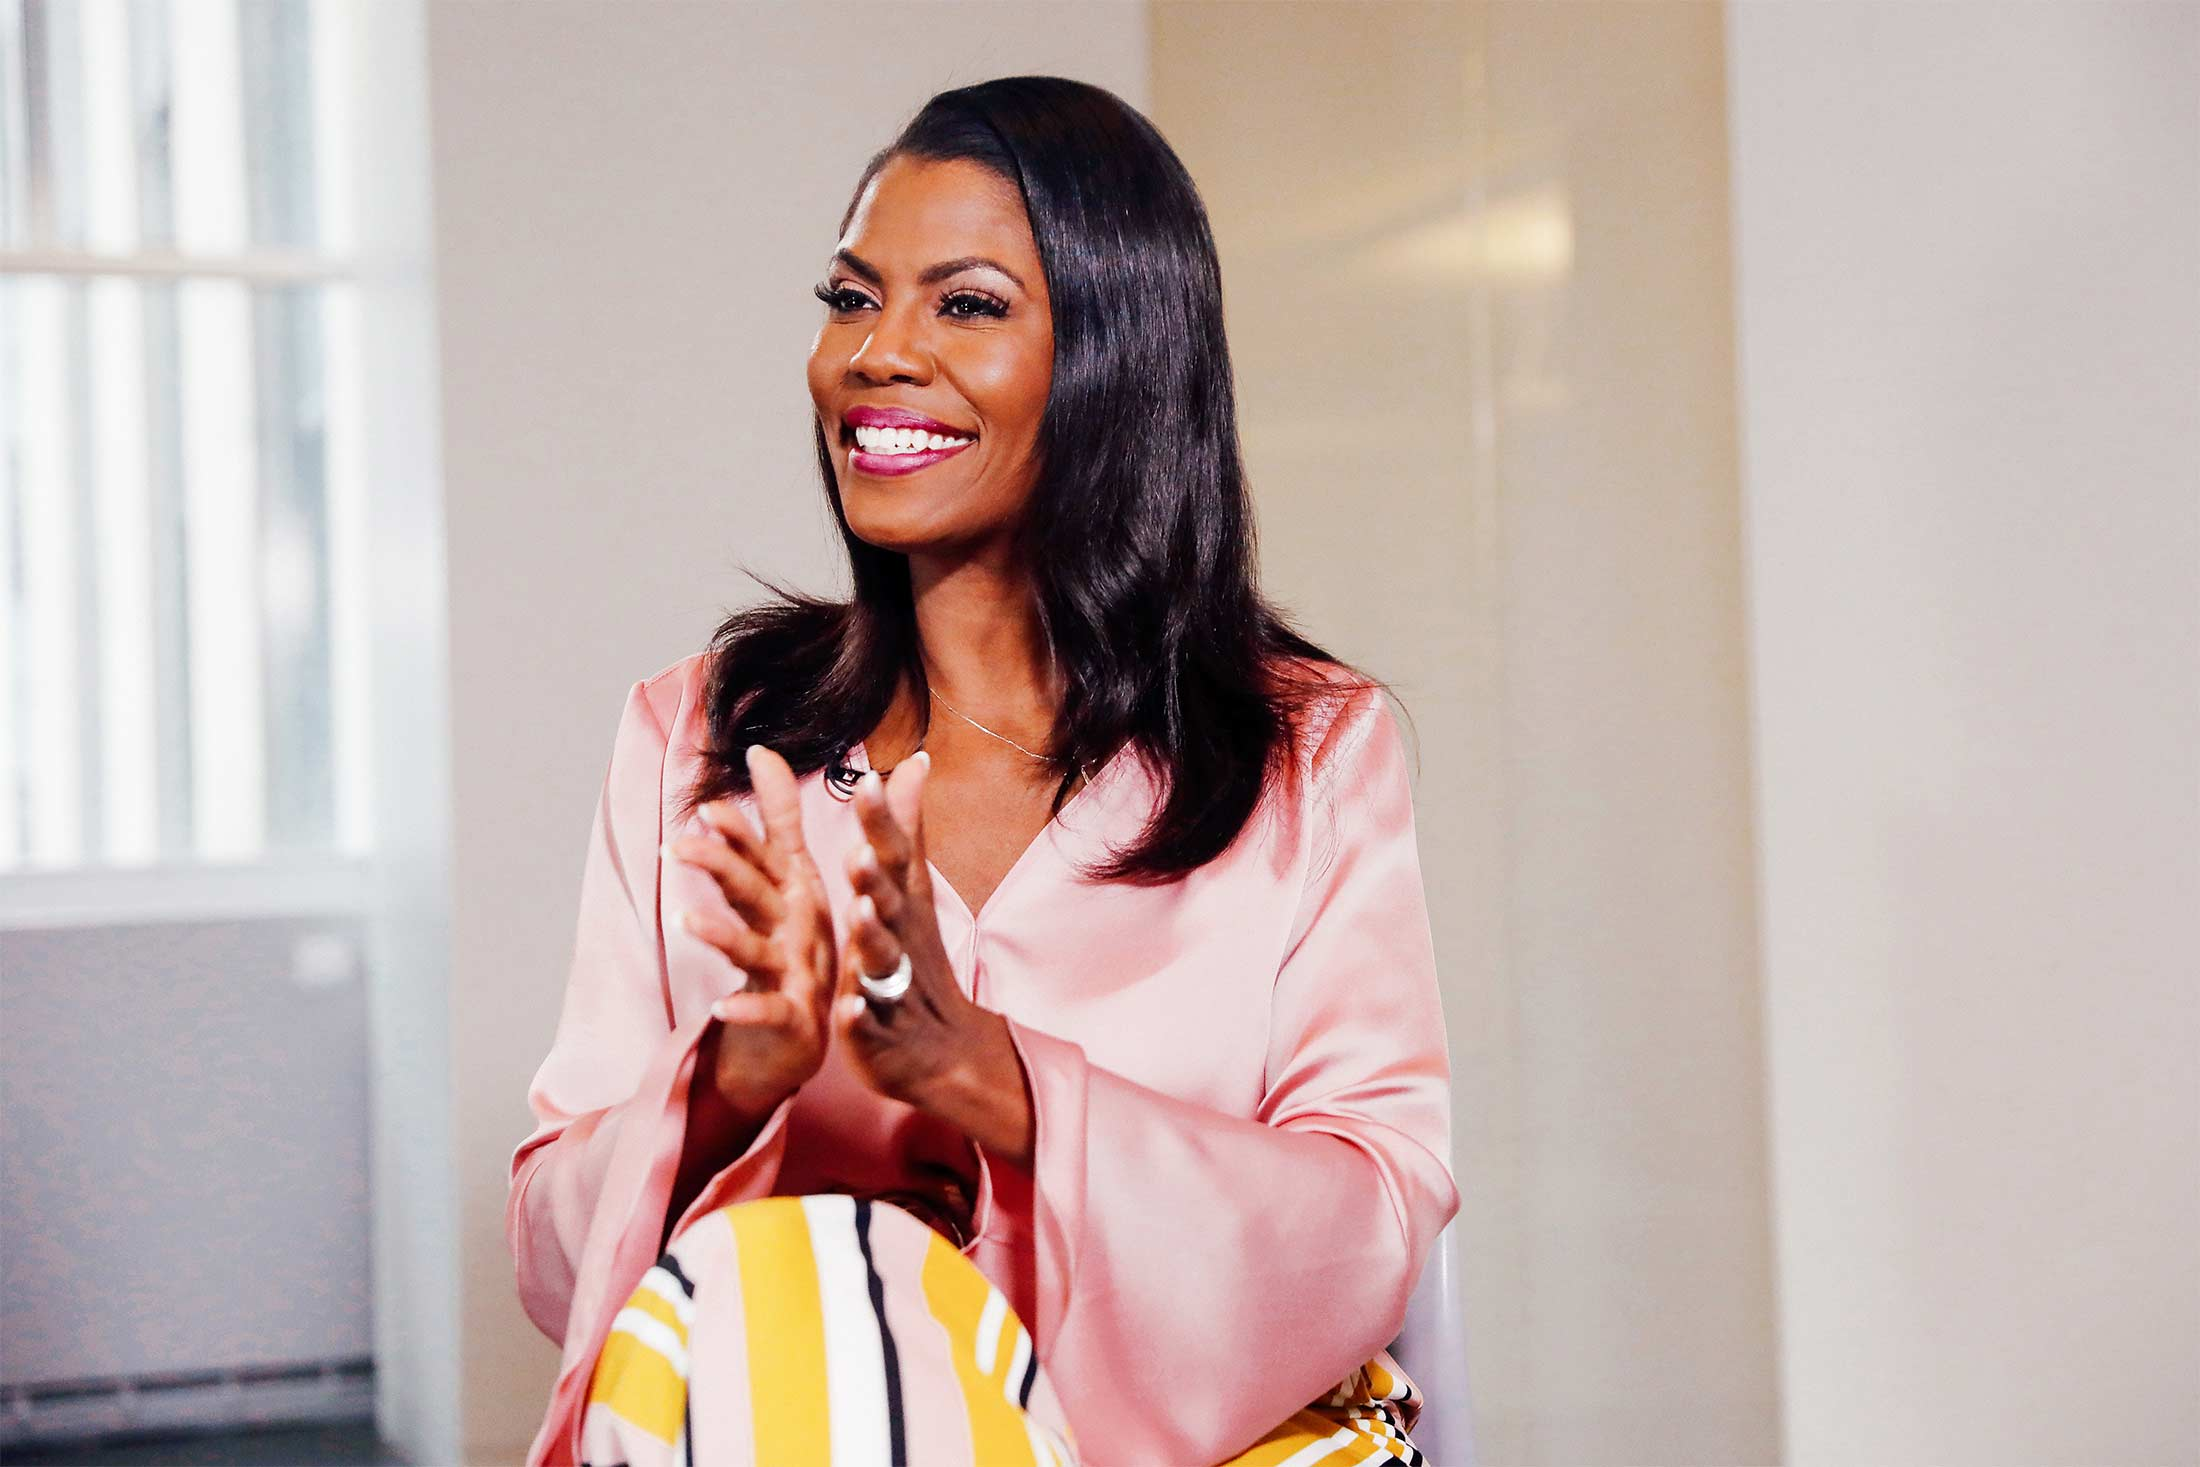 Omarosa Manigault-Newman claps during an interview on the release of her book, Unhinged, on Tuesday in New York City.